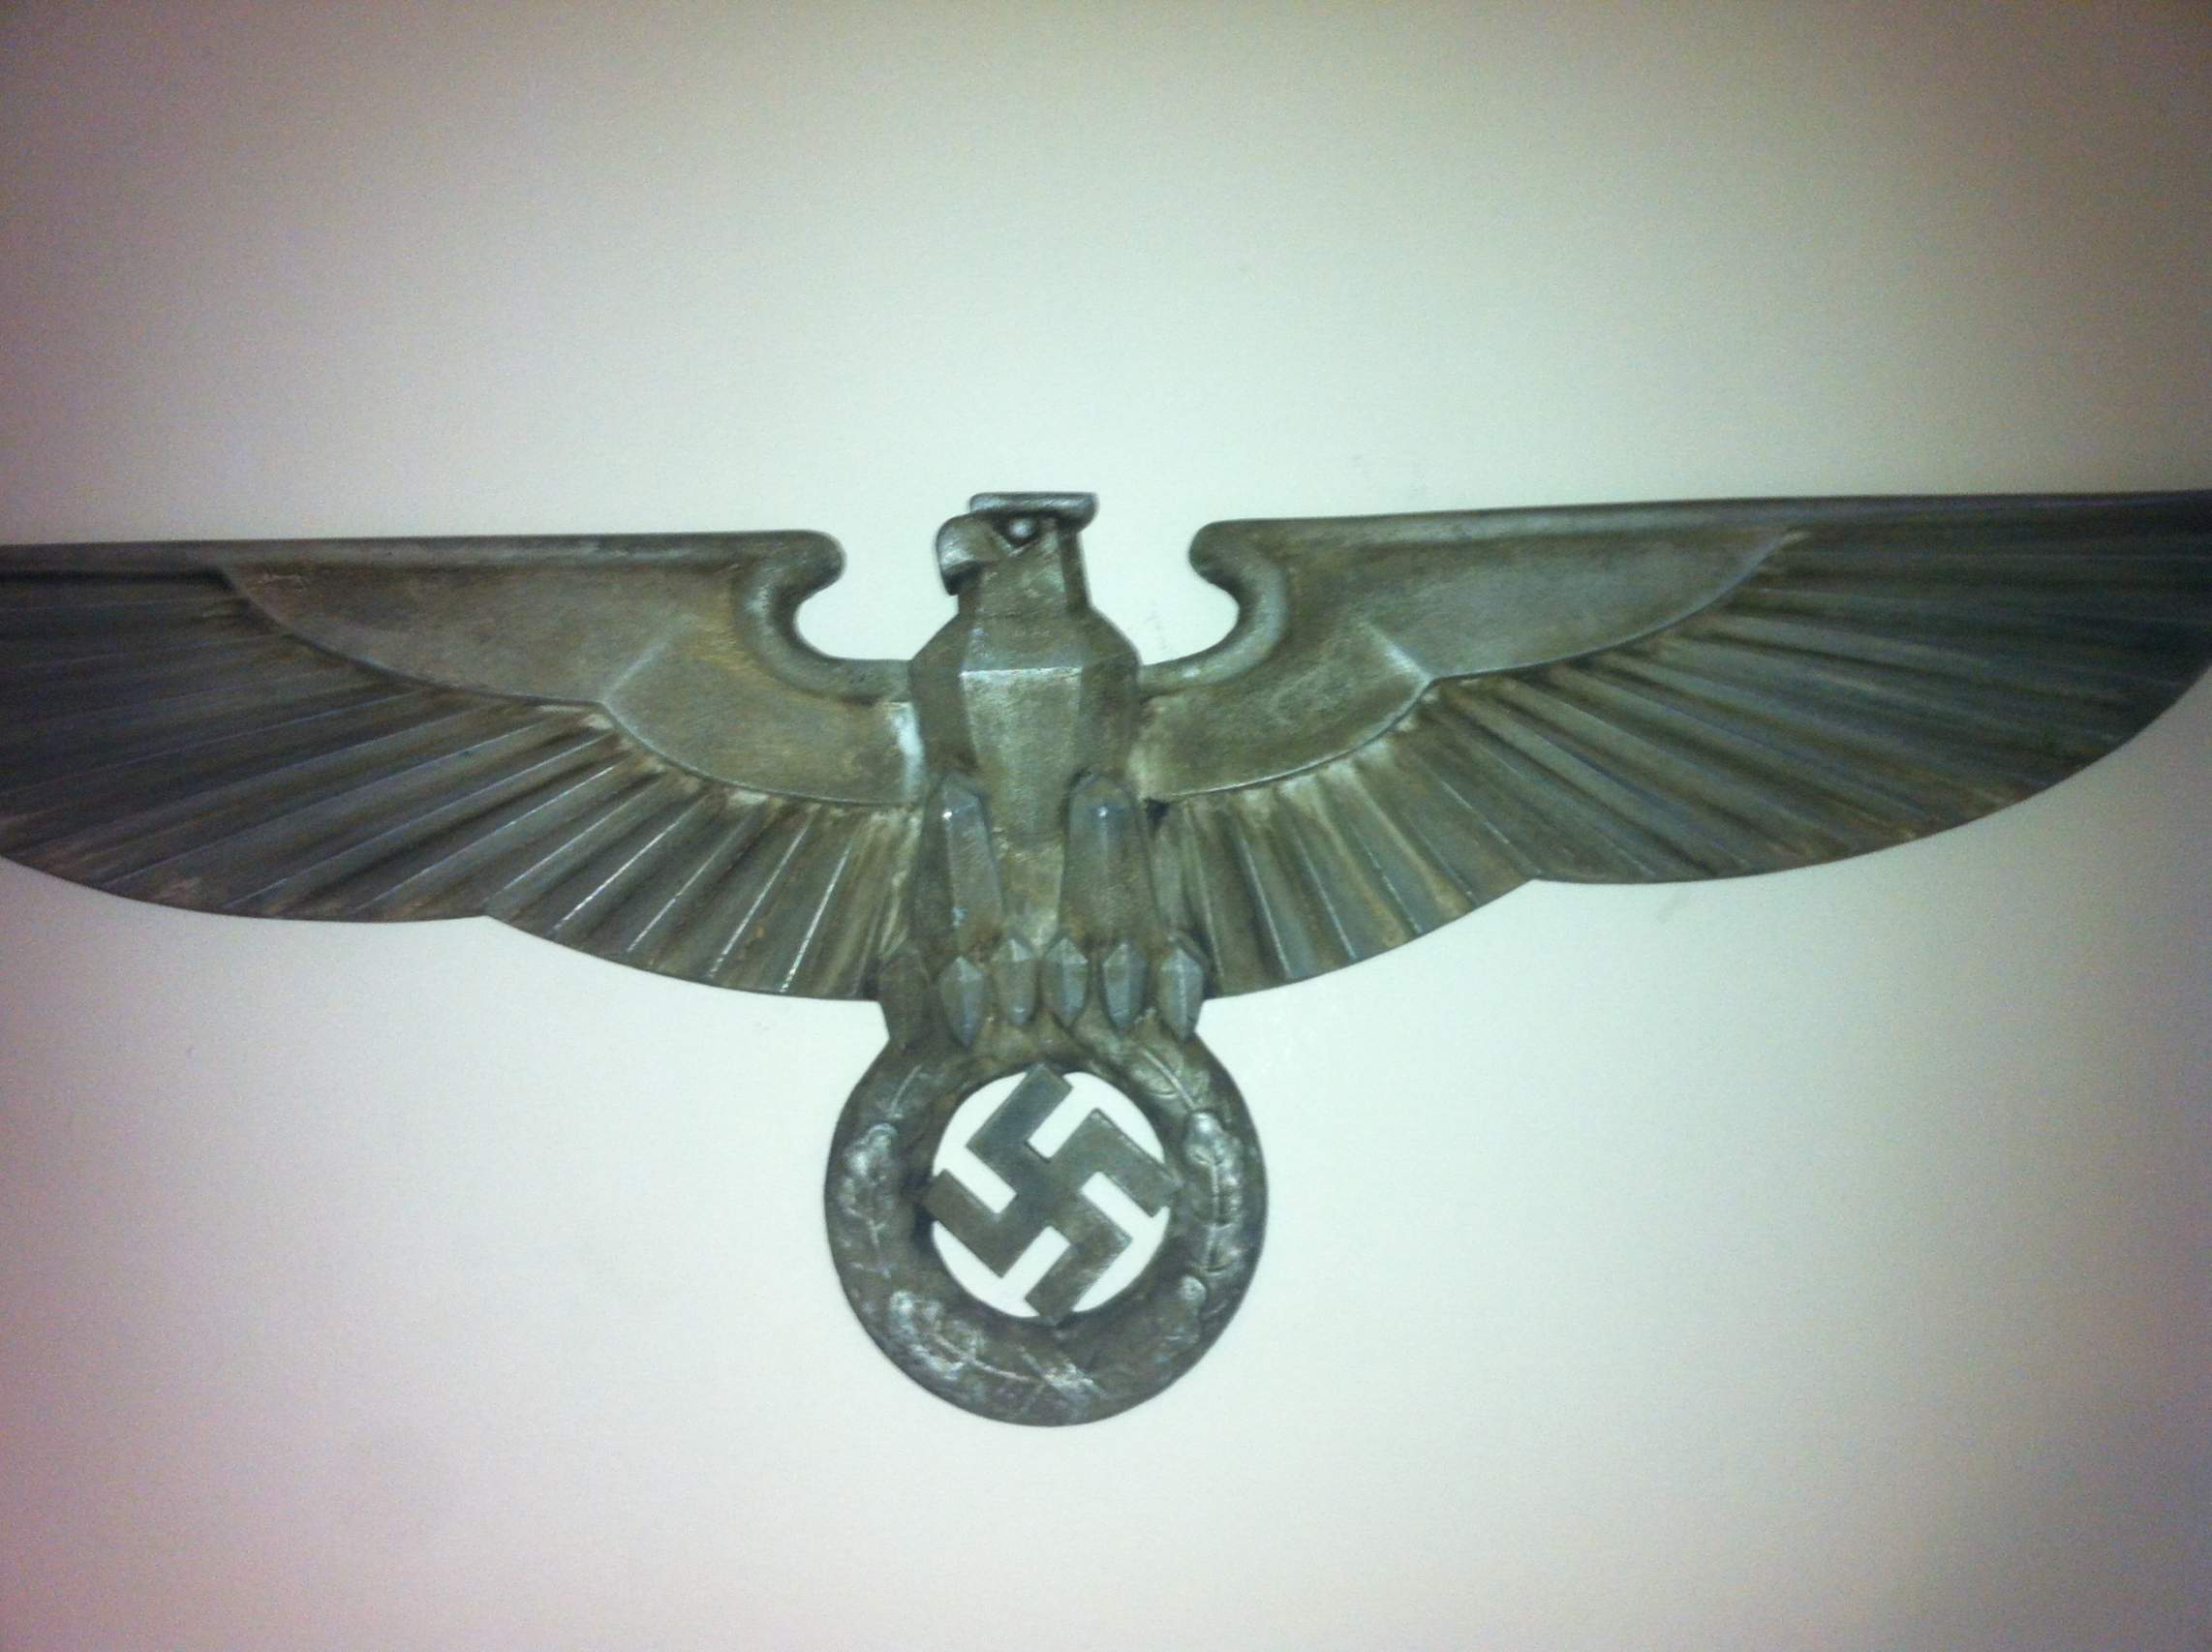 German Railroad Eagle Dont Know If They Are Original Or